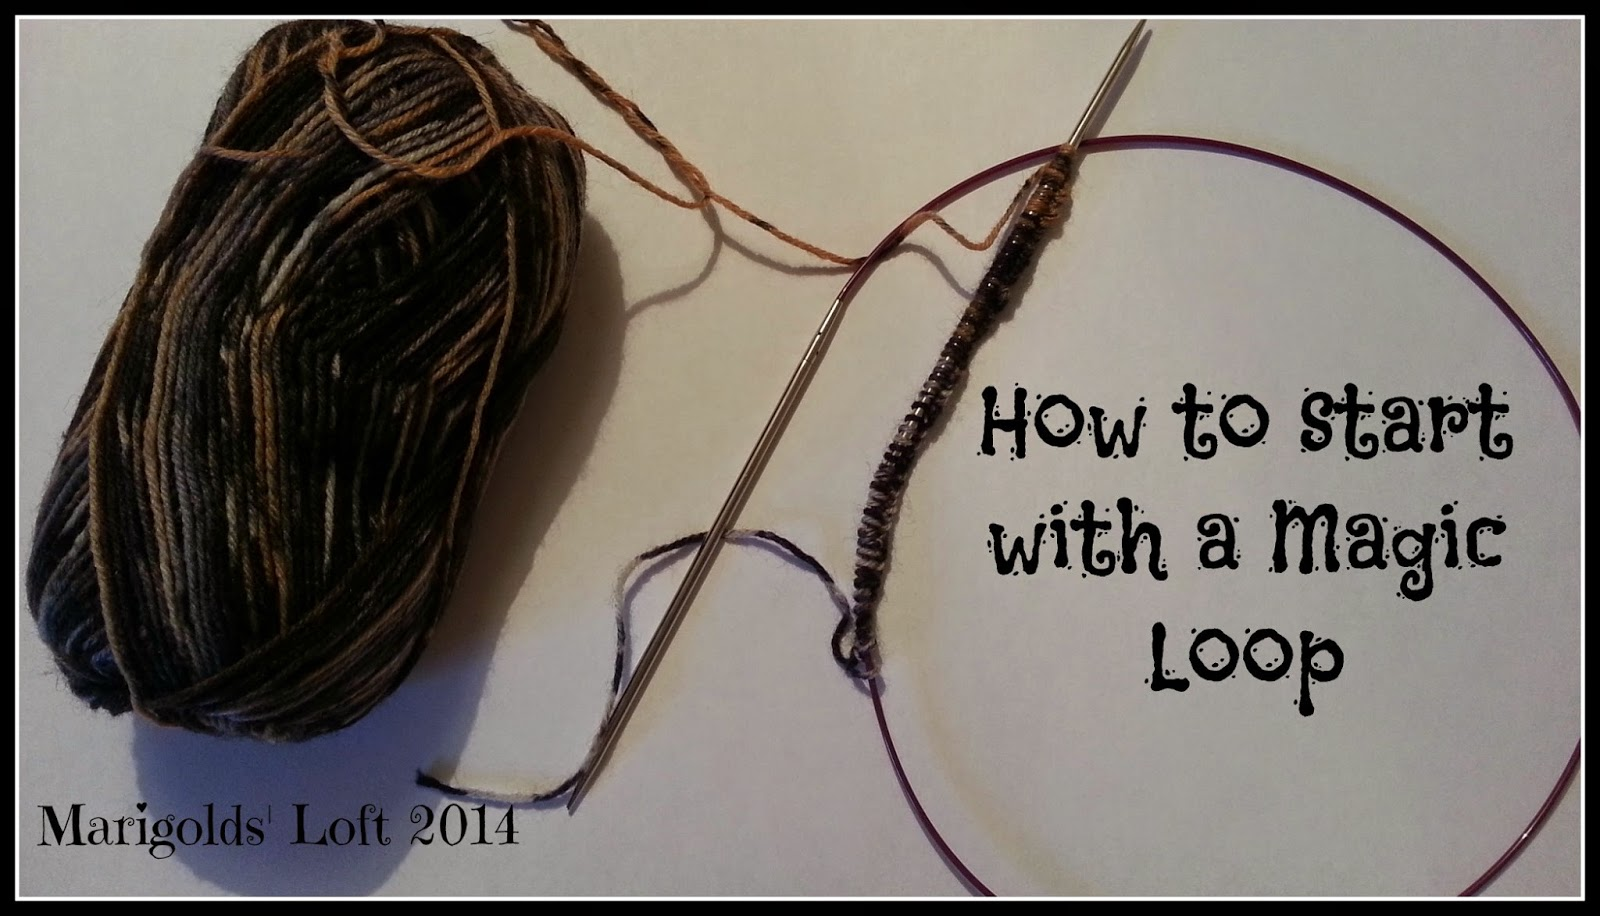 How to knit in a magic loop